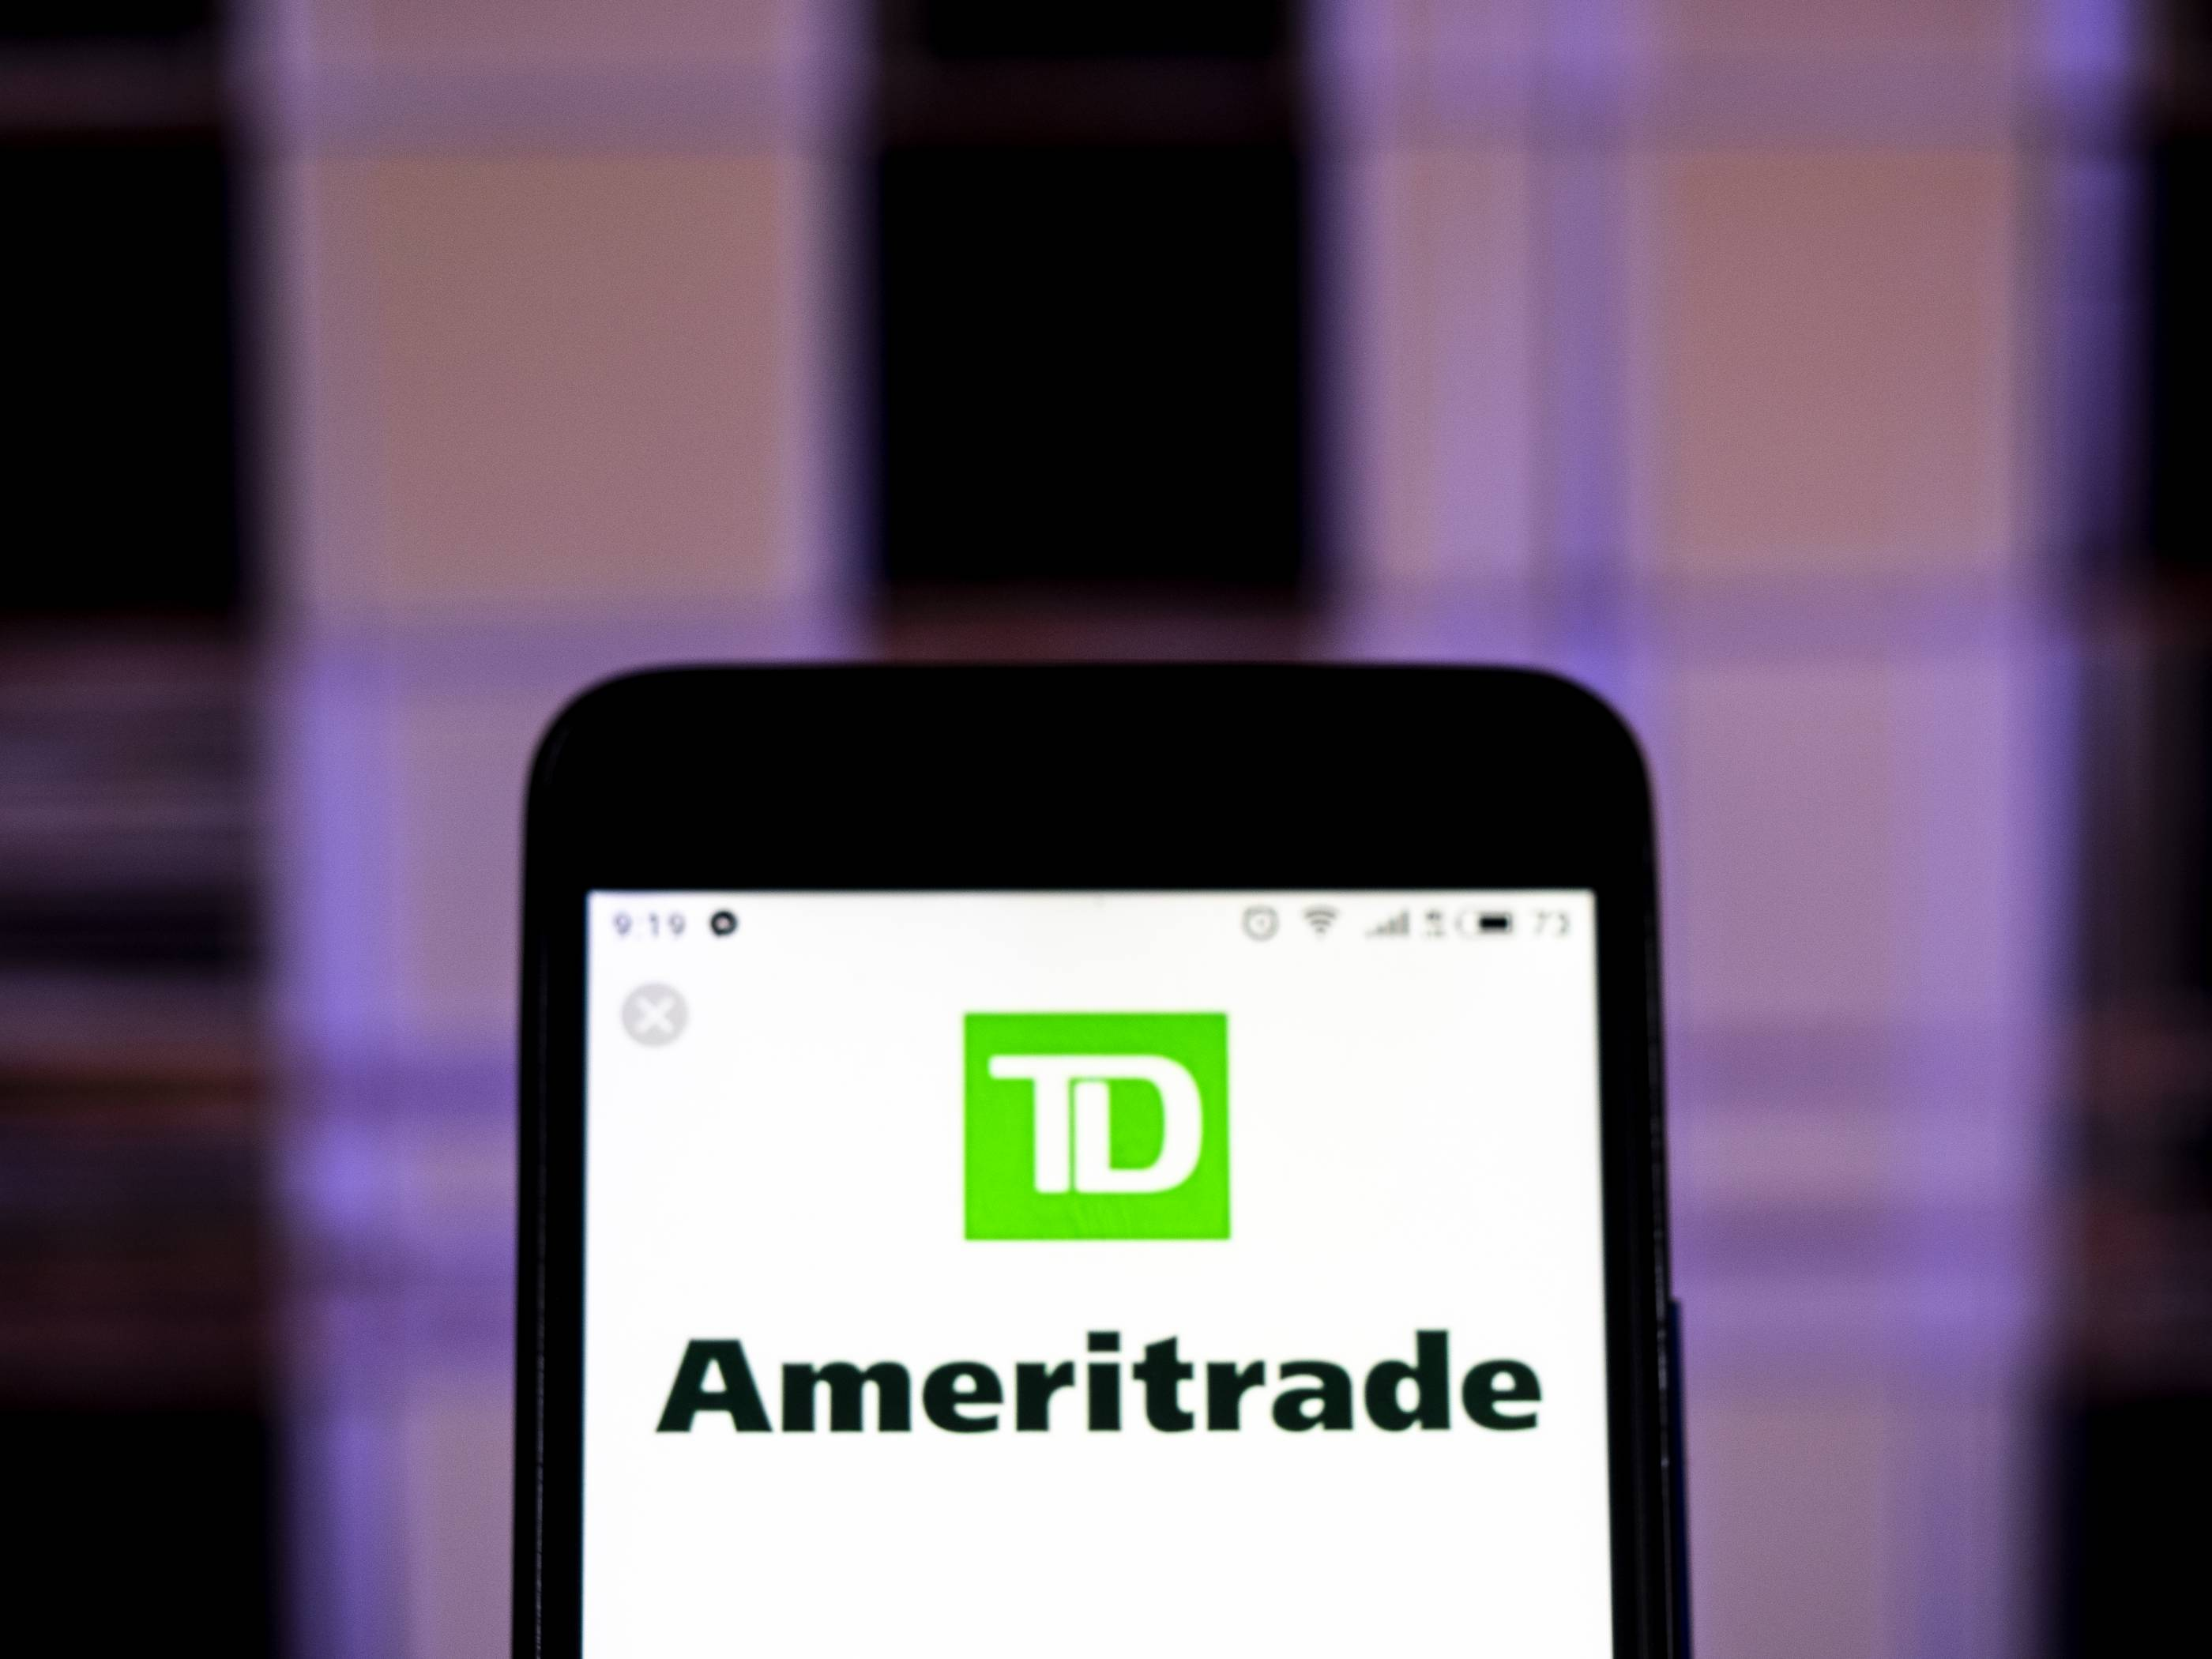 TD Ameritrade's CEO on Shaky Markets, 2019's Tech IPO Class | Fortune